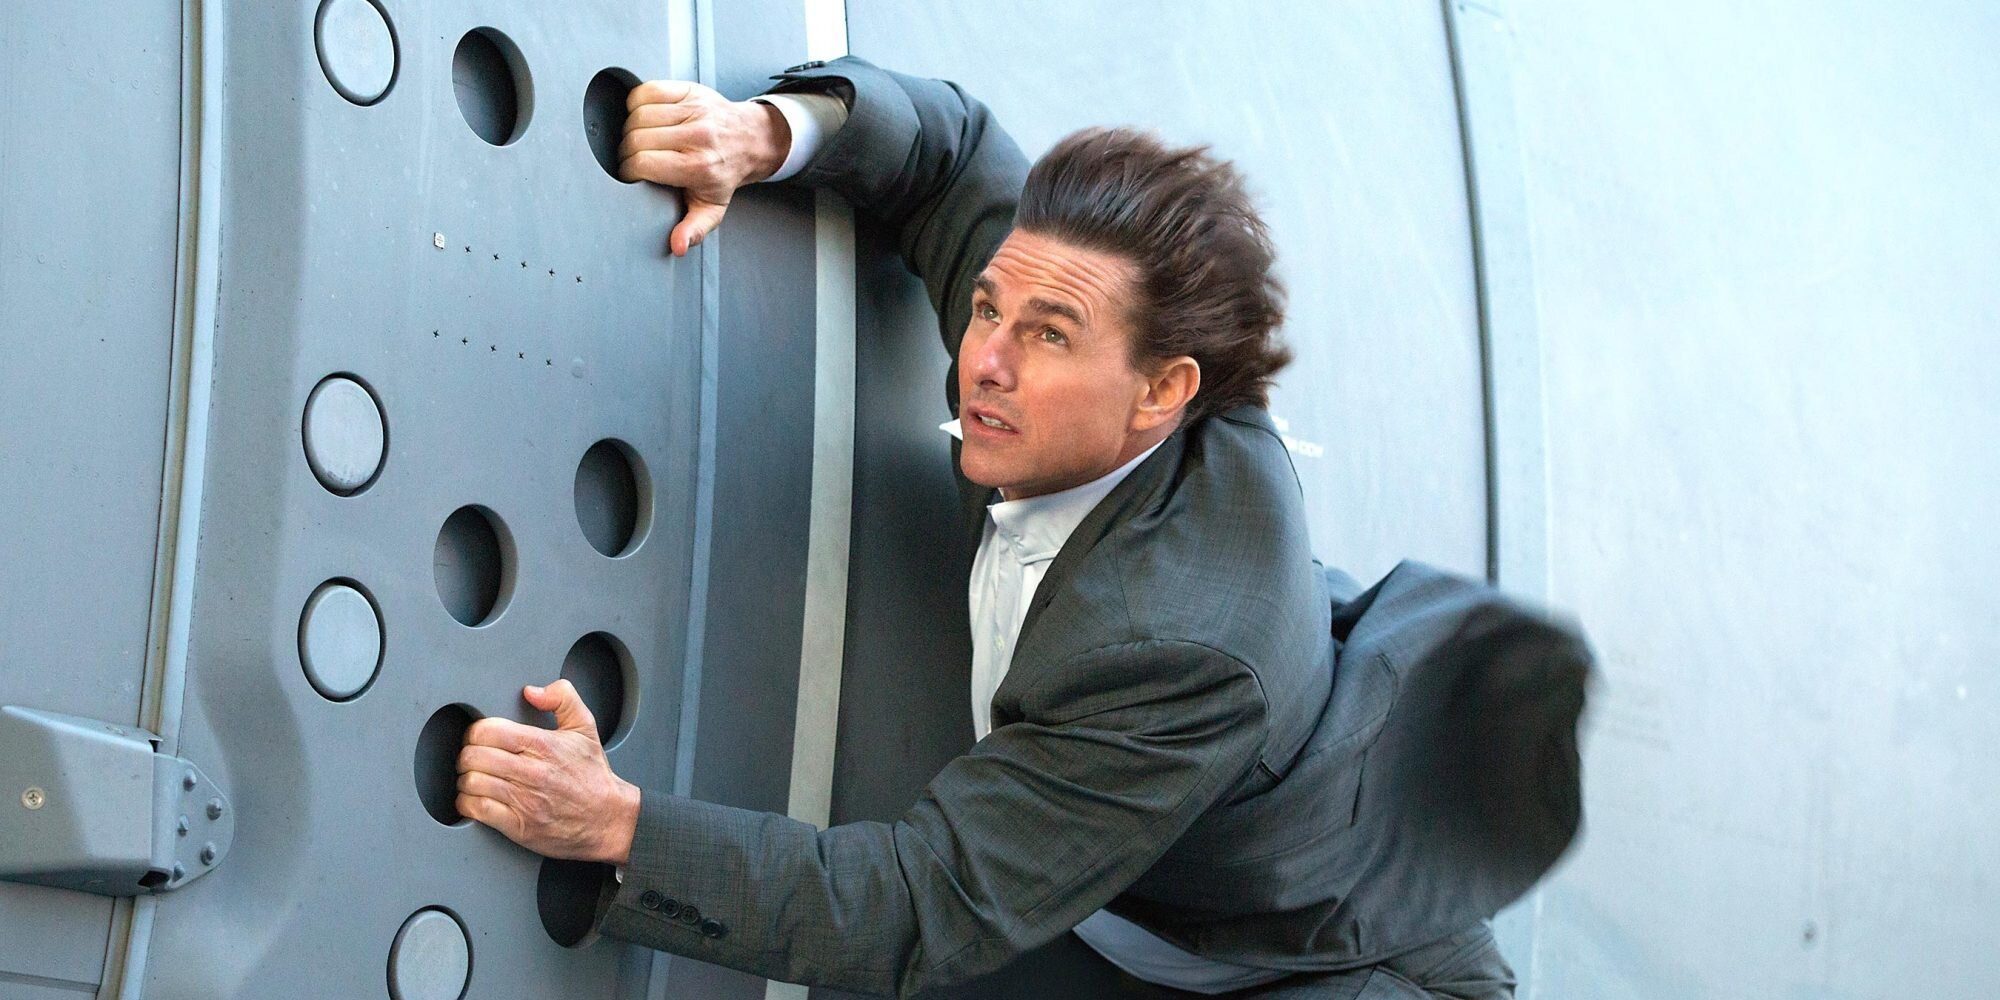 Mission: Impossible 7 filming stopped over positive COVID test